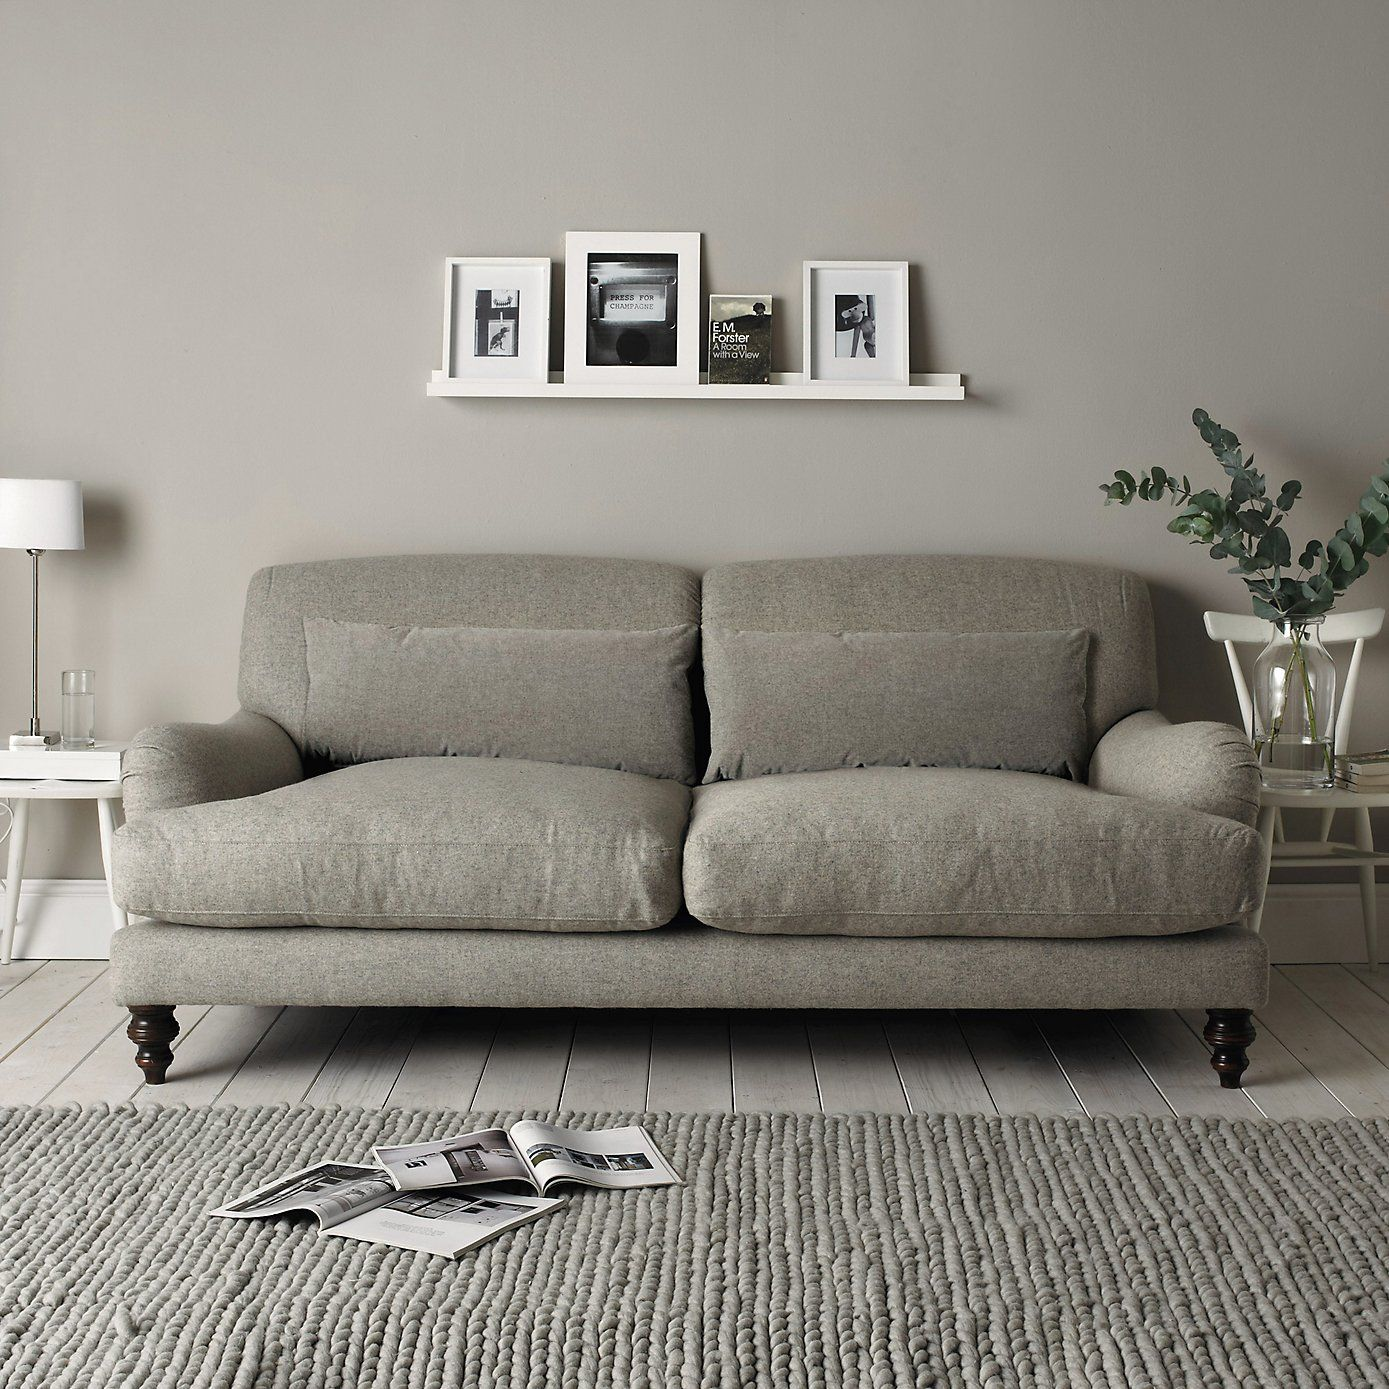 Mid Century Modern Light Gray Sofa Avery Wells Leather Studio Petersham Grey The White Company Casetta